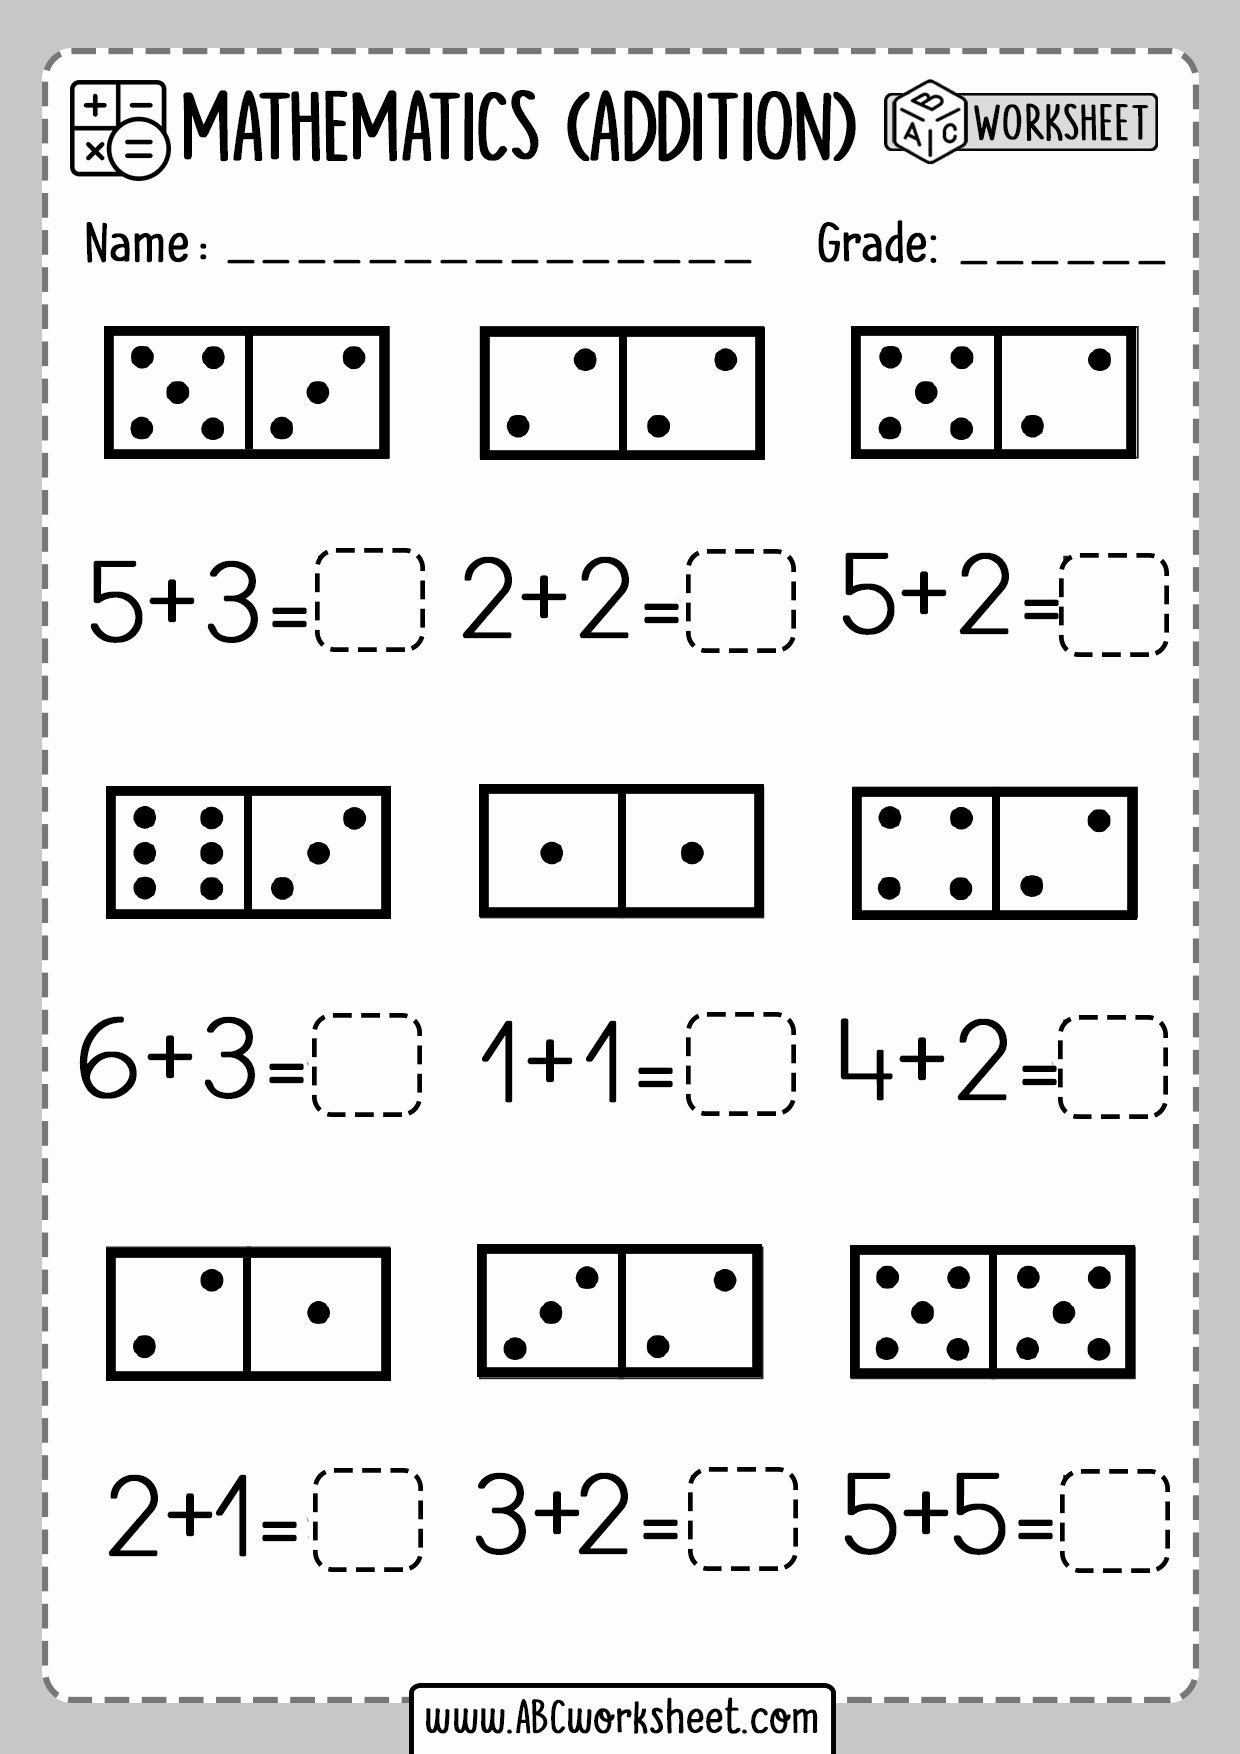 Free Math Worksheets for Preschoolers Kids Kindergarten Printable Worksheetsr Preschoolers Free Math